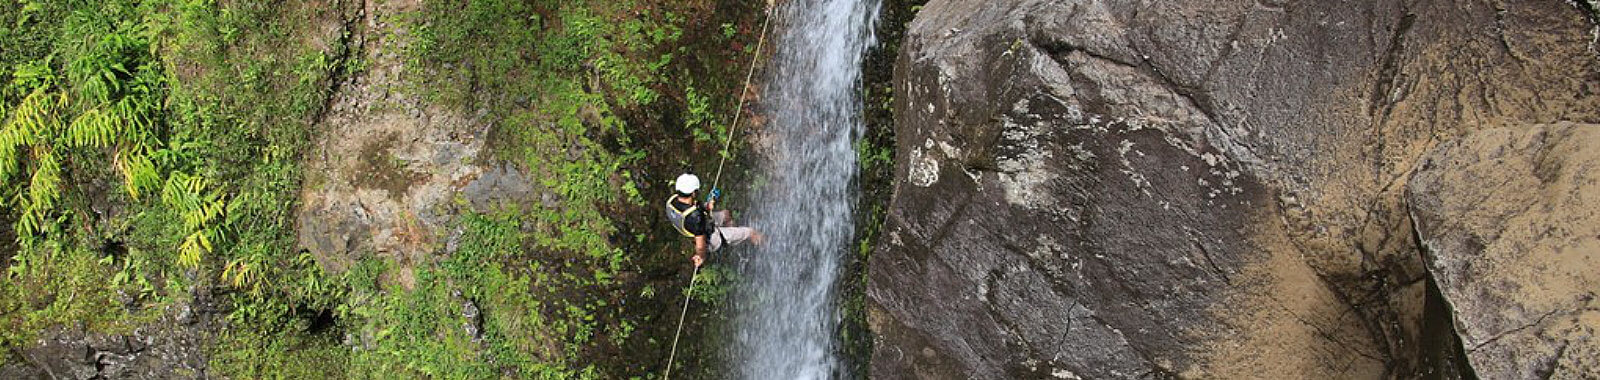 Man Rappeling Waterfall